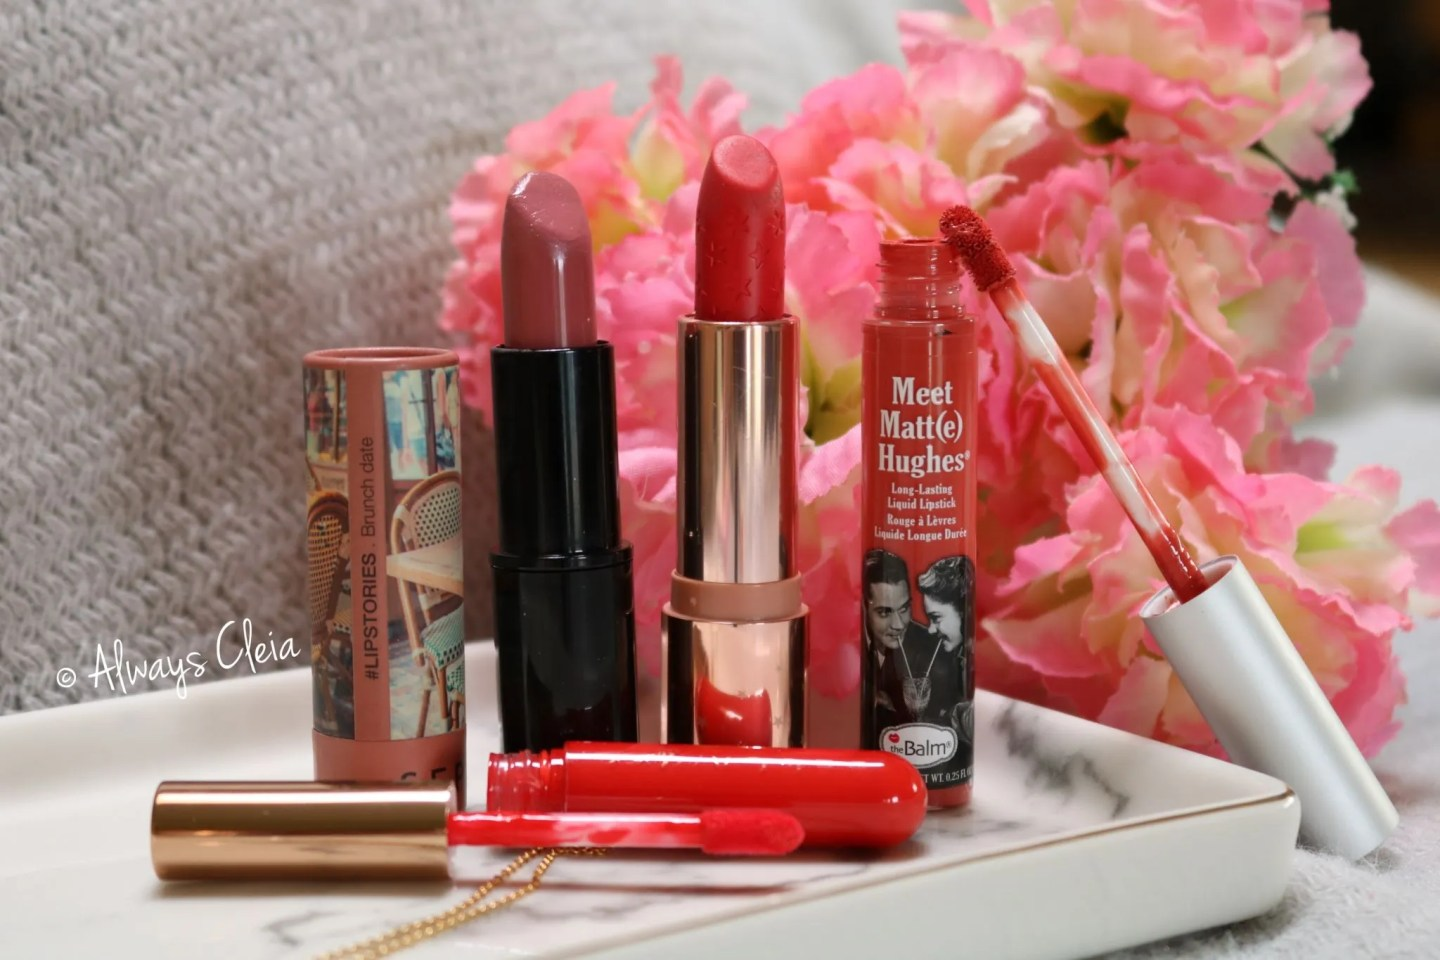 Amazing Lipsticks for Summer